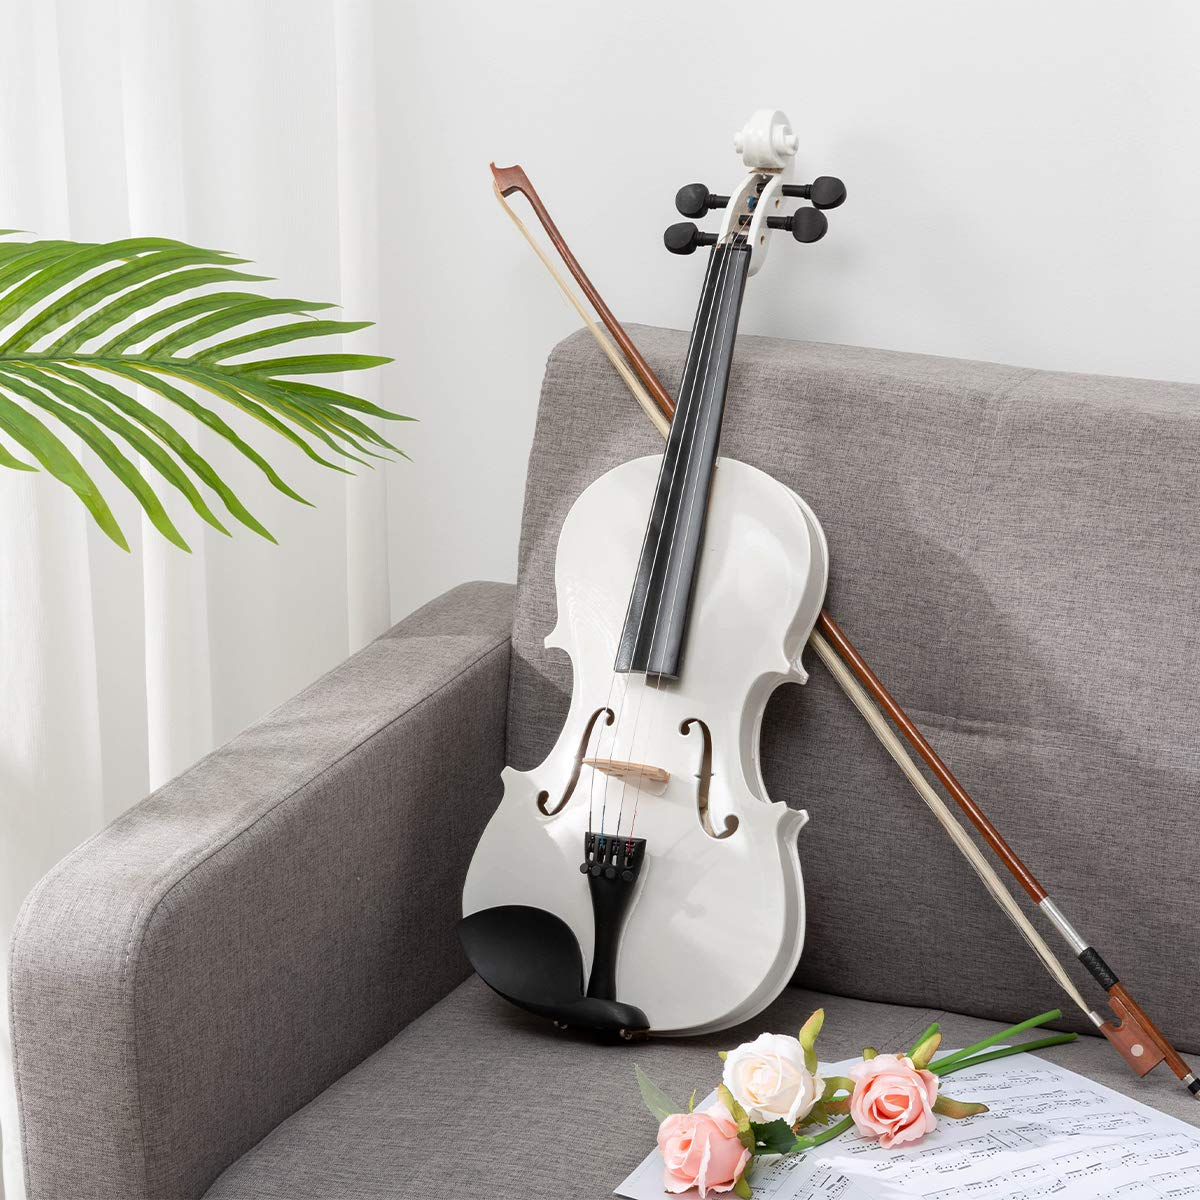 ARTALL 4/4 Handmade Student Acoustic Violin Beginner Pack with Bow, Hard Case, Chin Rest, Tuner, Spare Strings, Rosin and Bridge, Glossy White by ARTALL (Image #2)